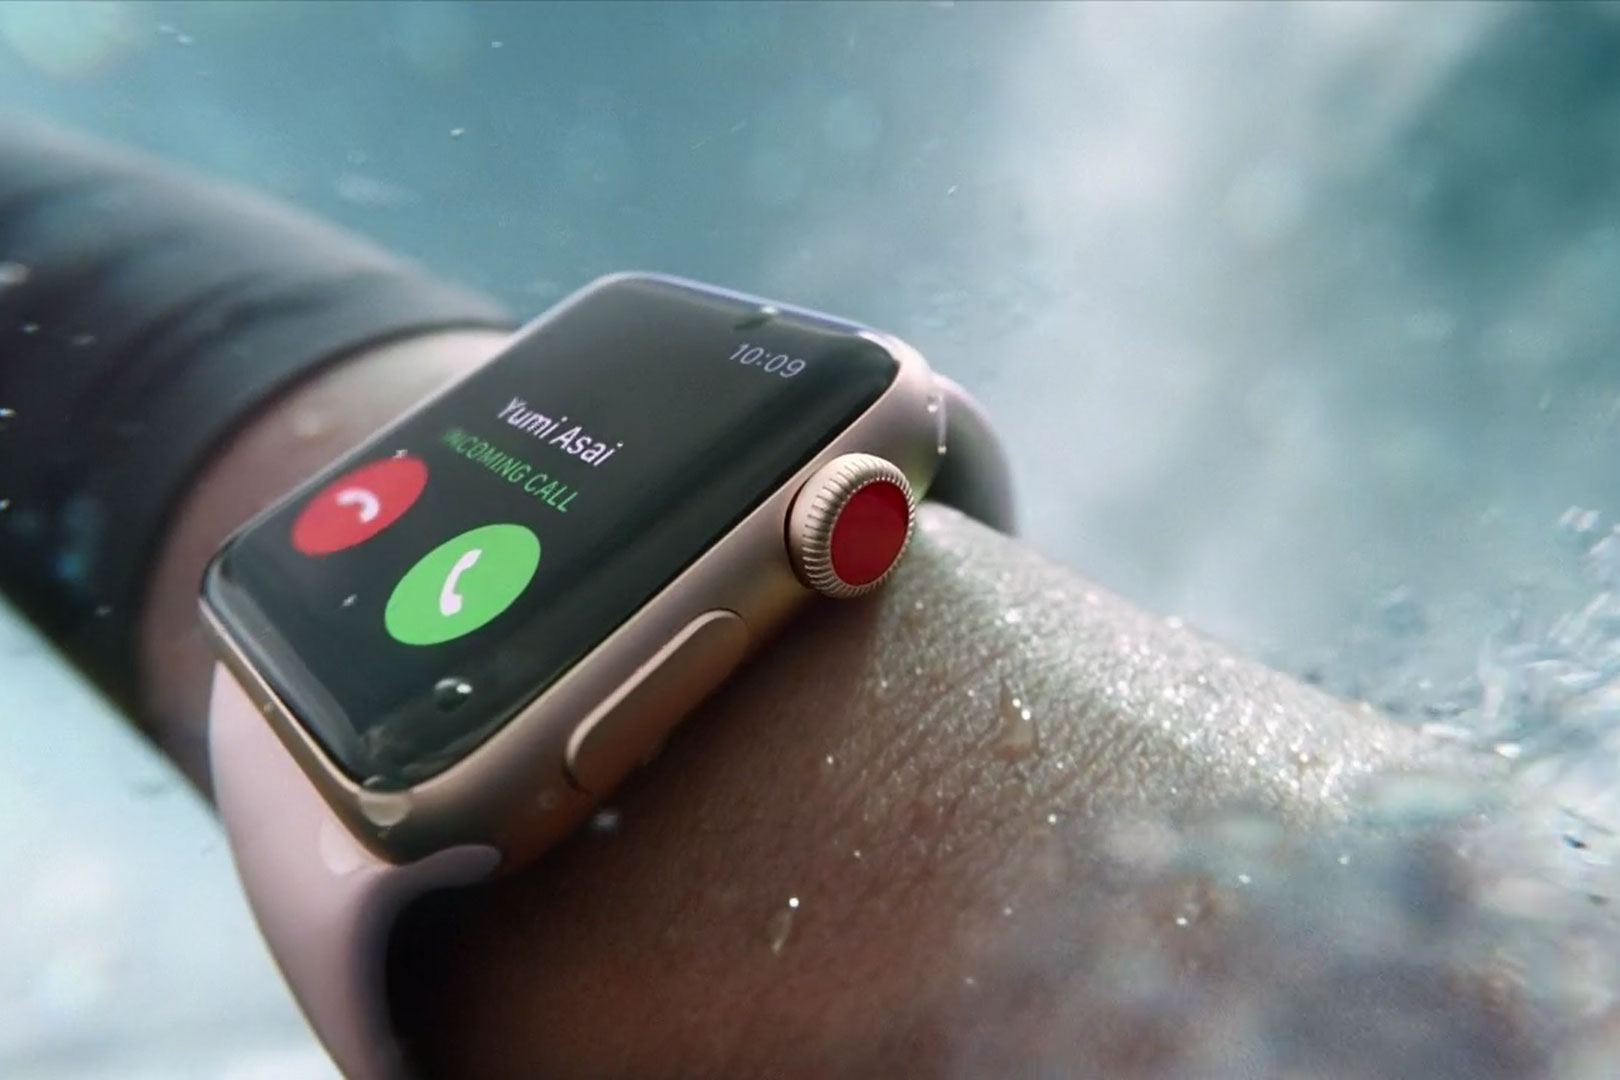 Apple's New Series 3 Apple Watch Has Cell Connection, $399 Price Tag